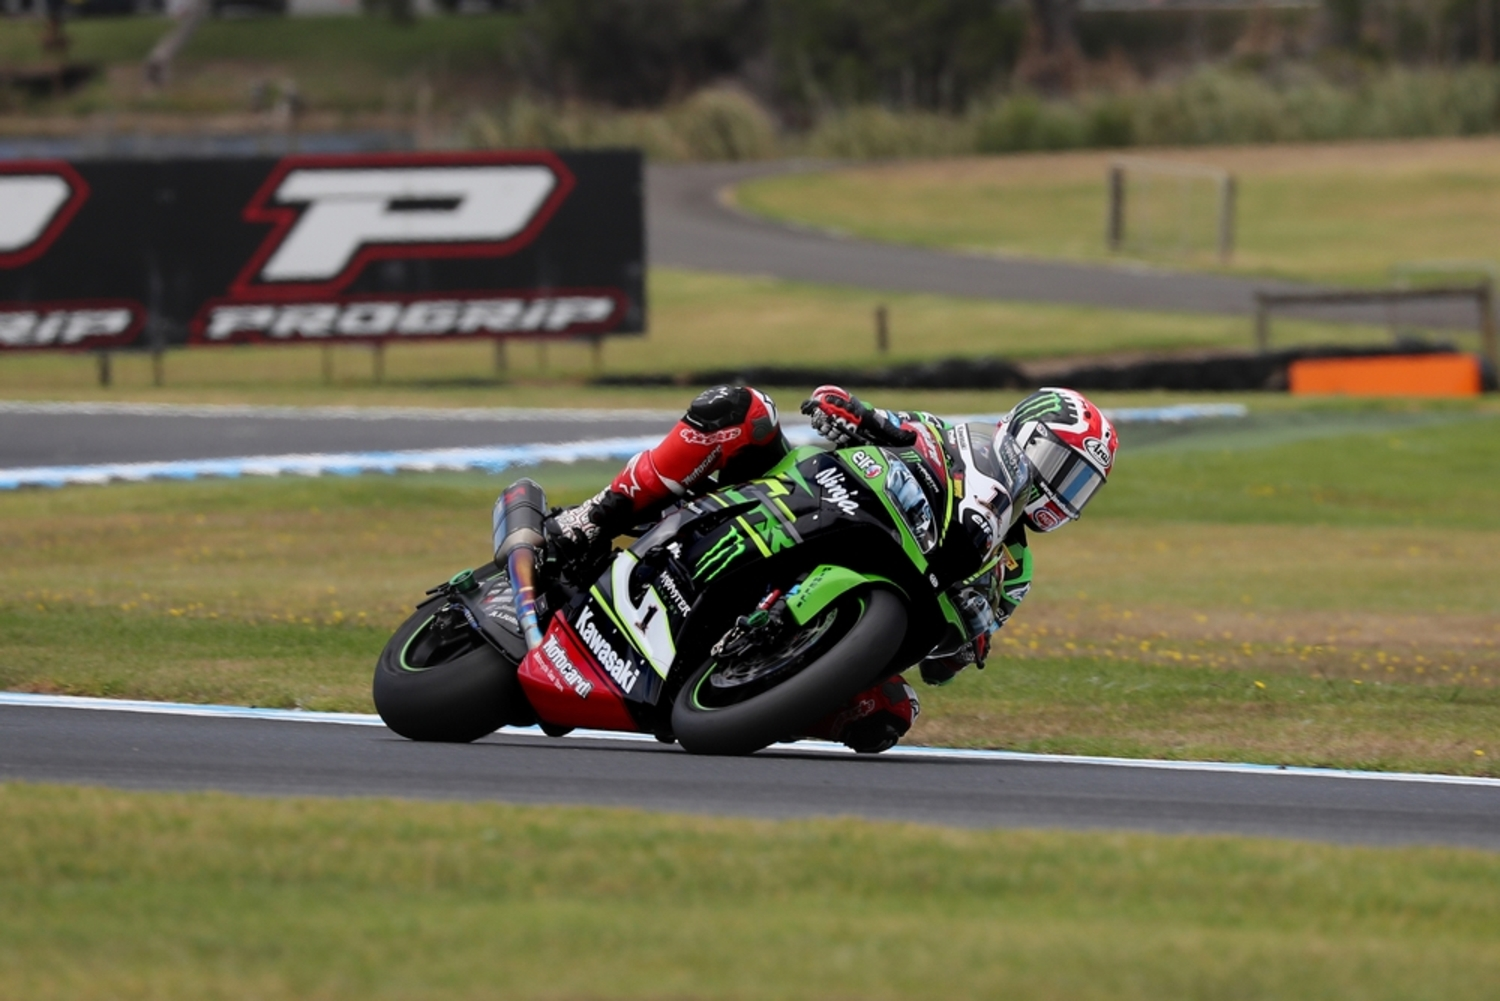 SBK Test a Phillip Island. Day 2